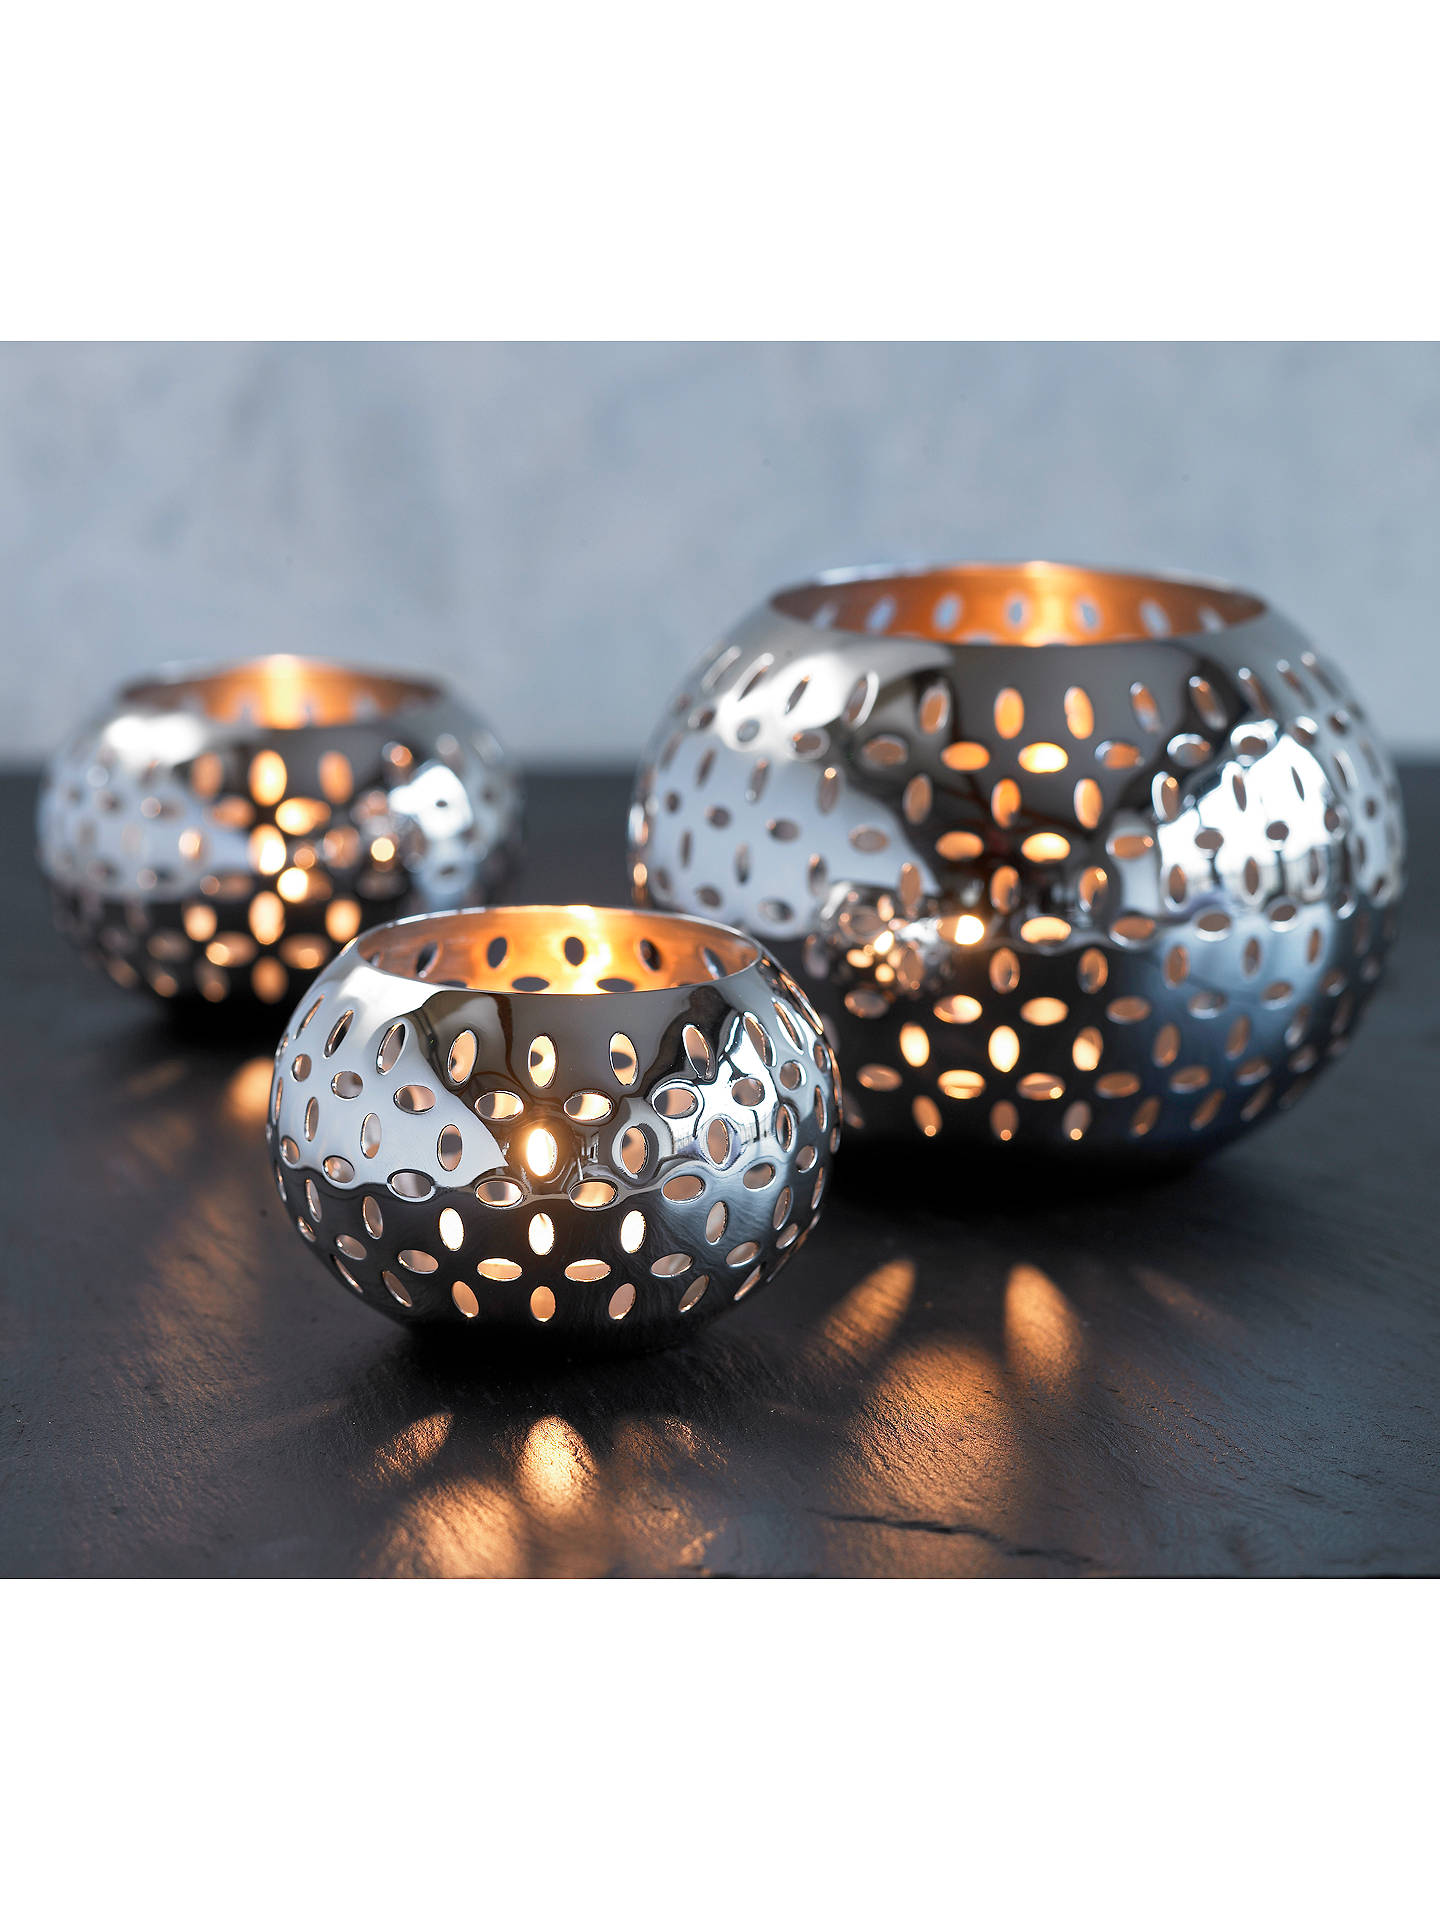 BuyRobert Welch Sesame Tealight Holder Online at johnlewis.com